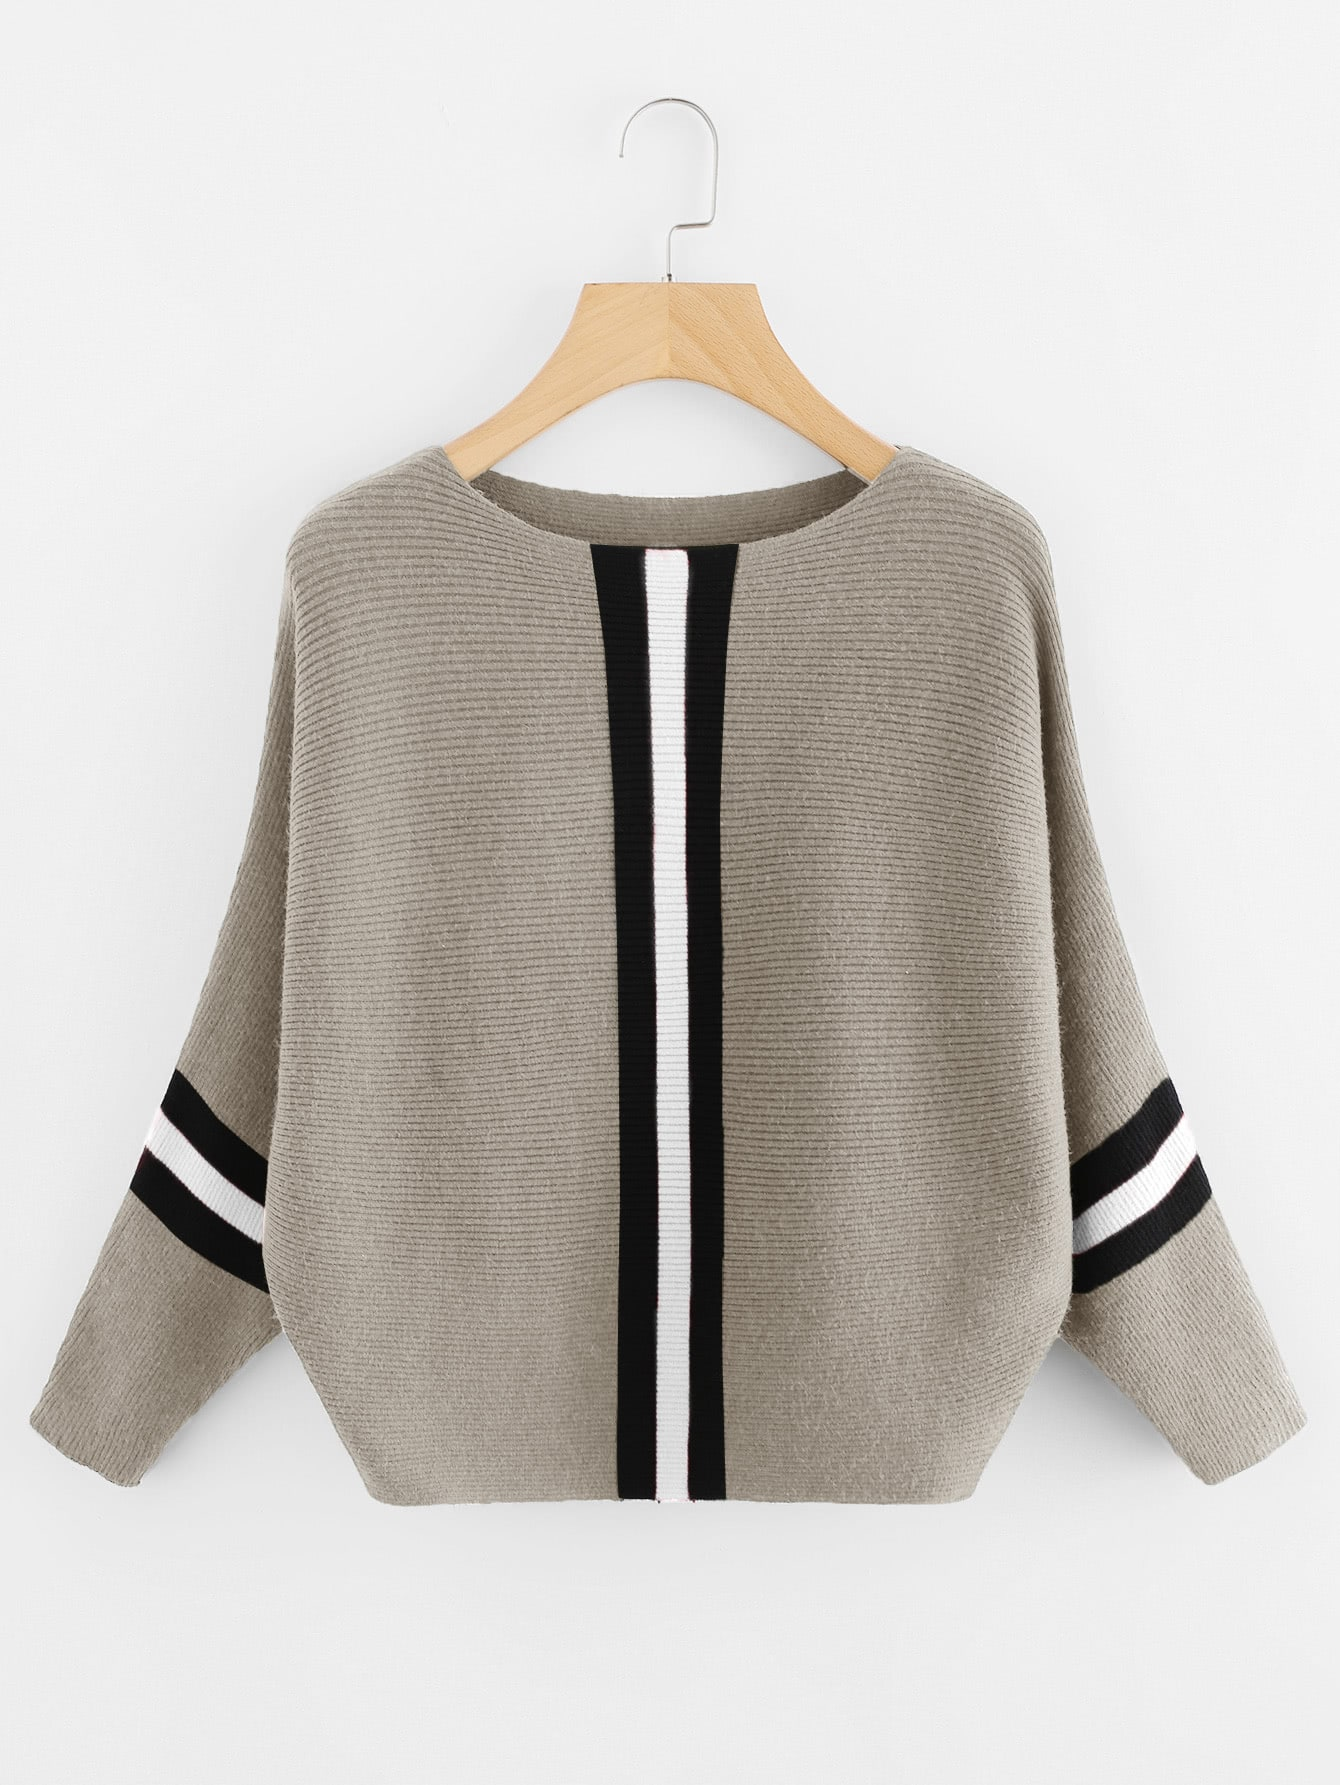 Contrast Striped Panel Ribbed Sweater sweater171215001